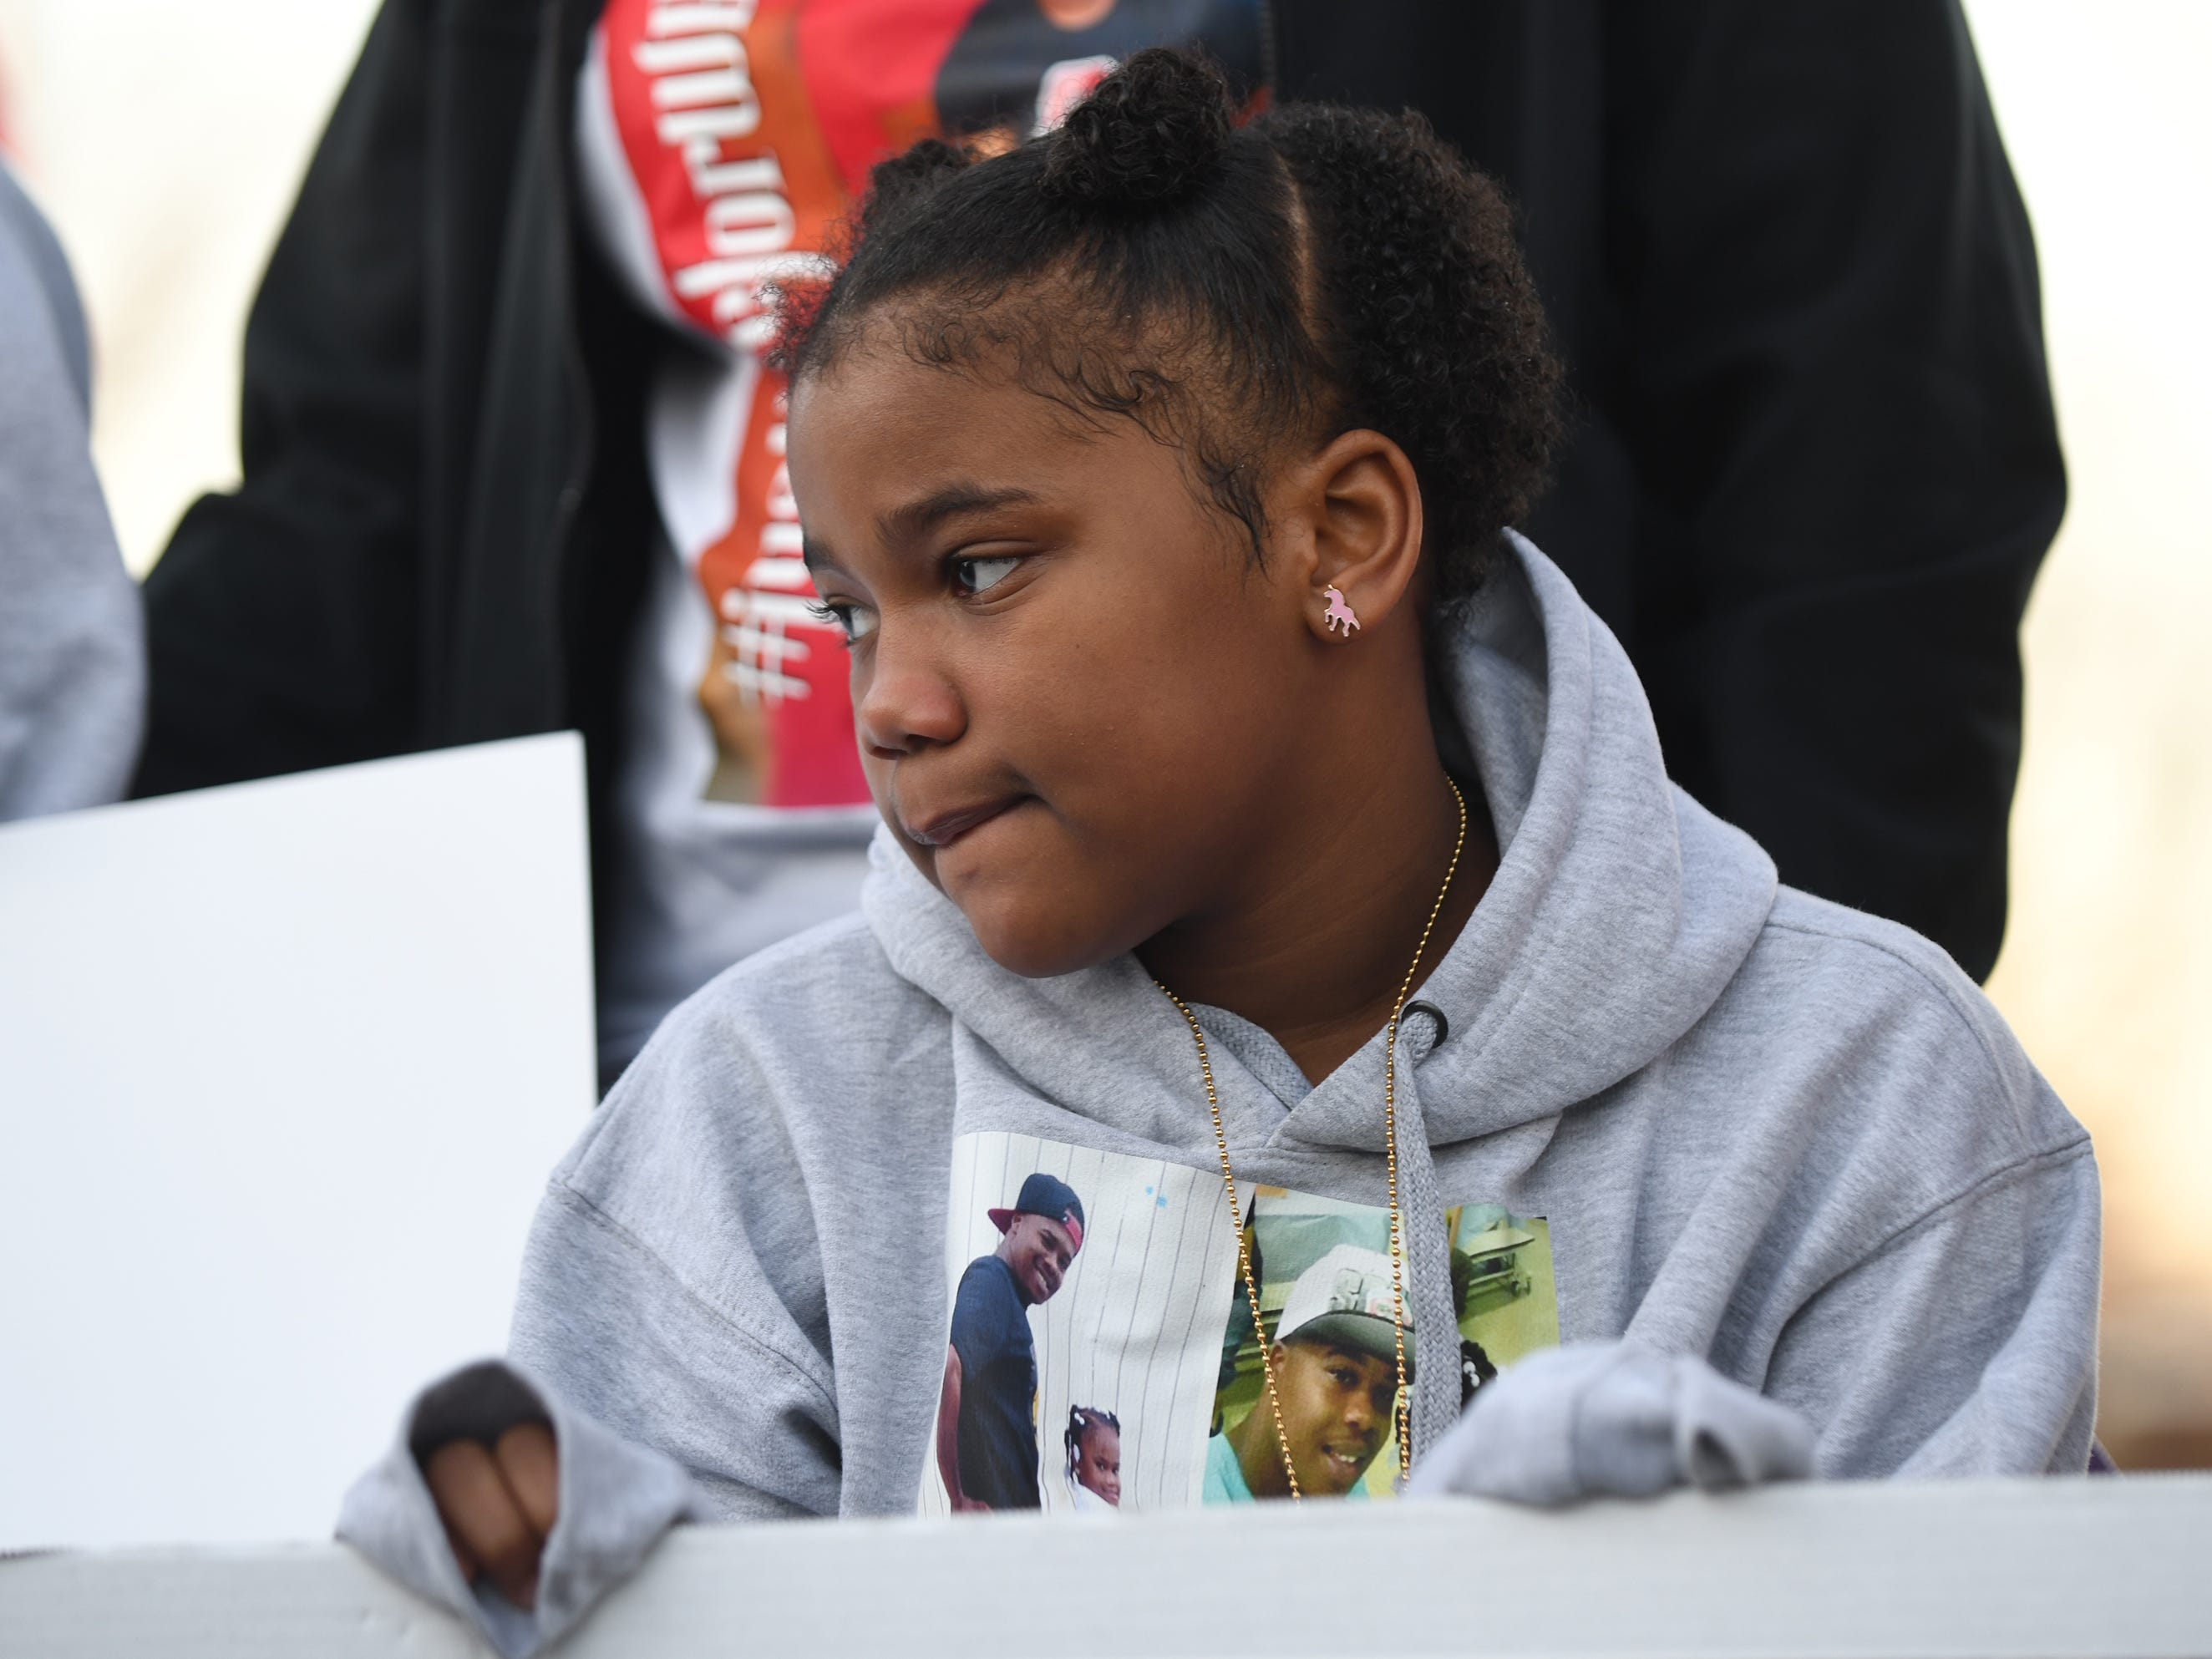 Walter L. Brown's daughter Amani attends a vigil for her father at the Vineland Midget Football grounds on Monday, Feb. 4, 2019.